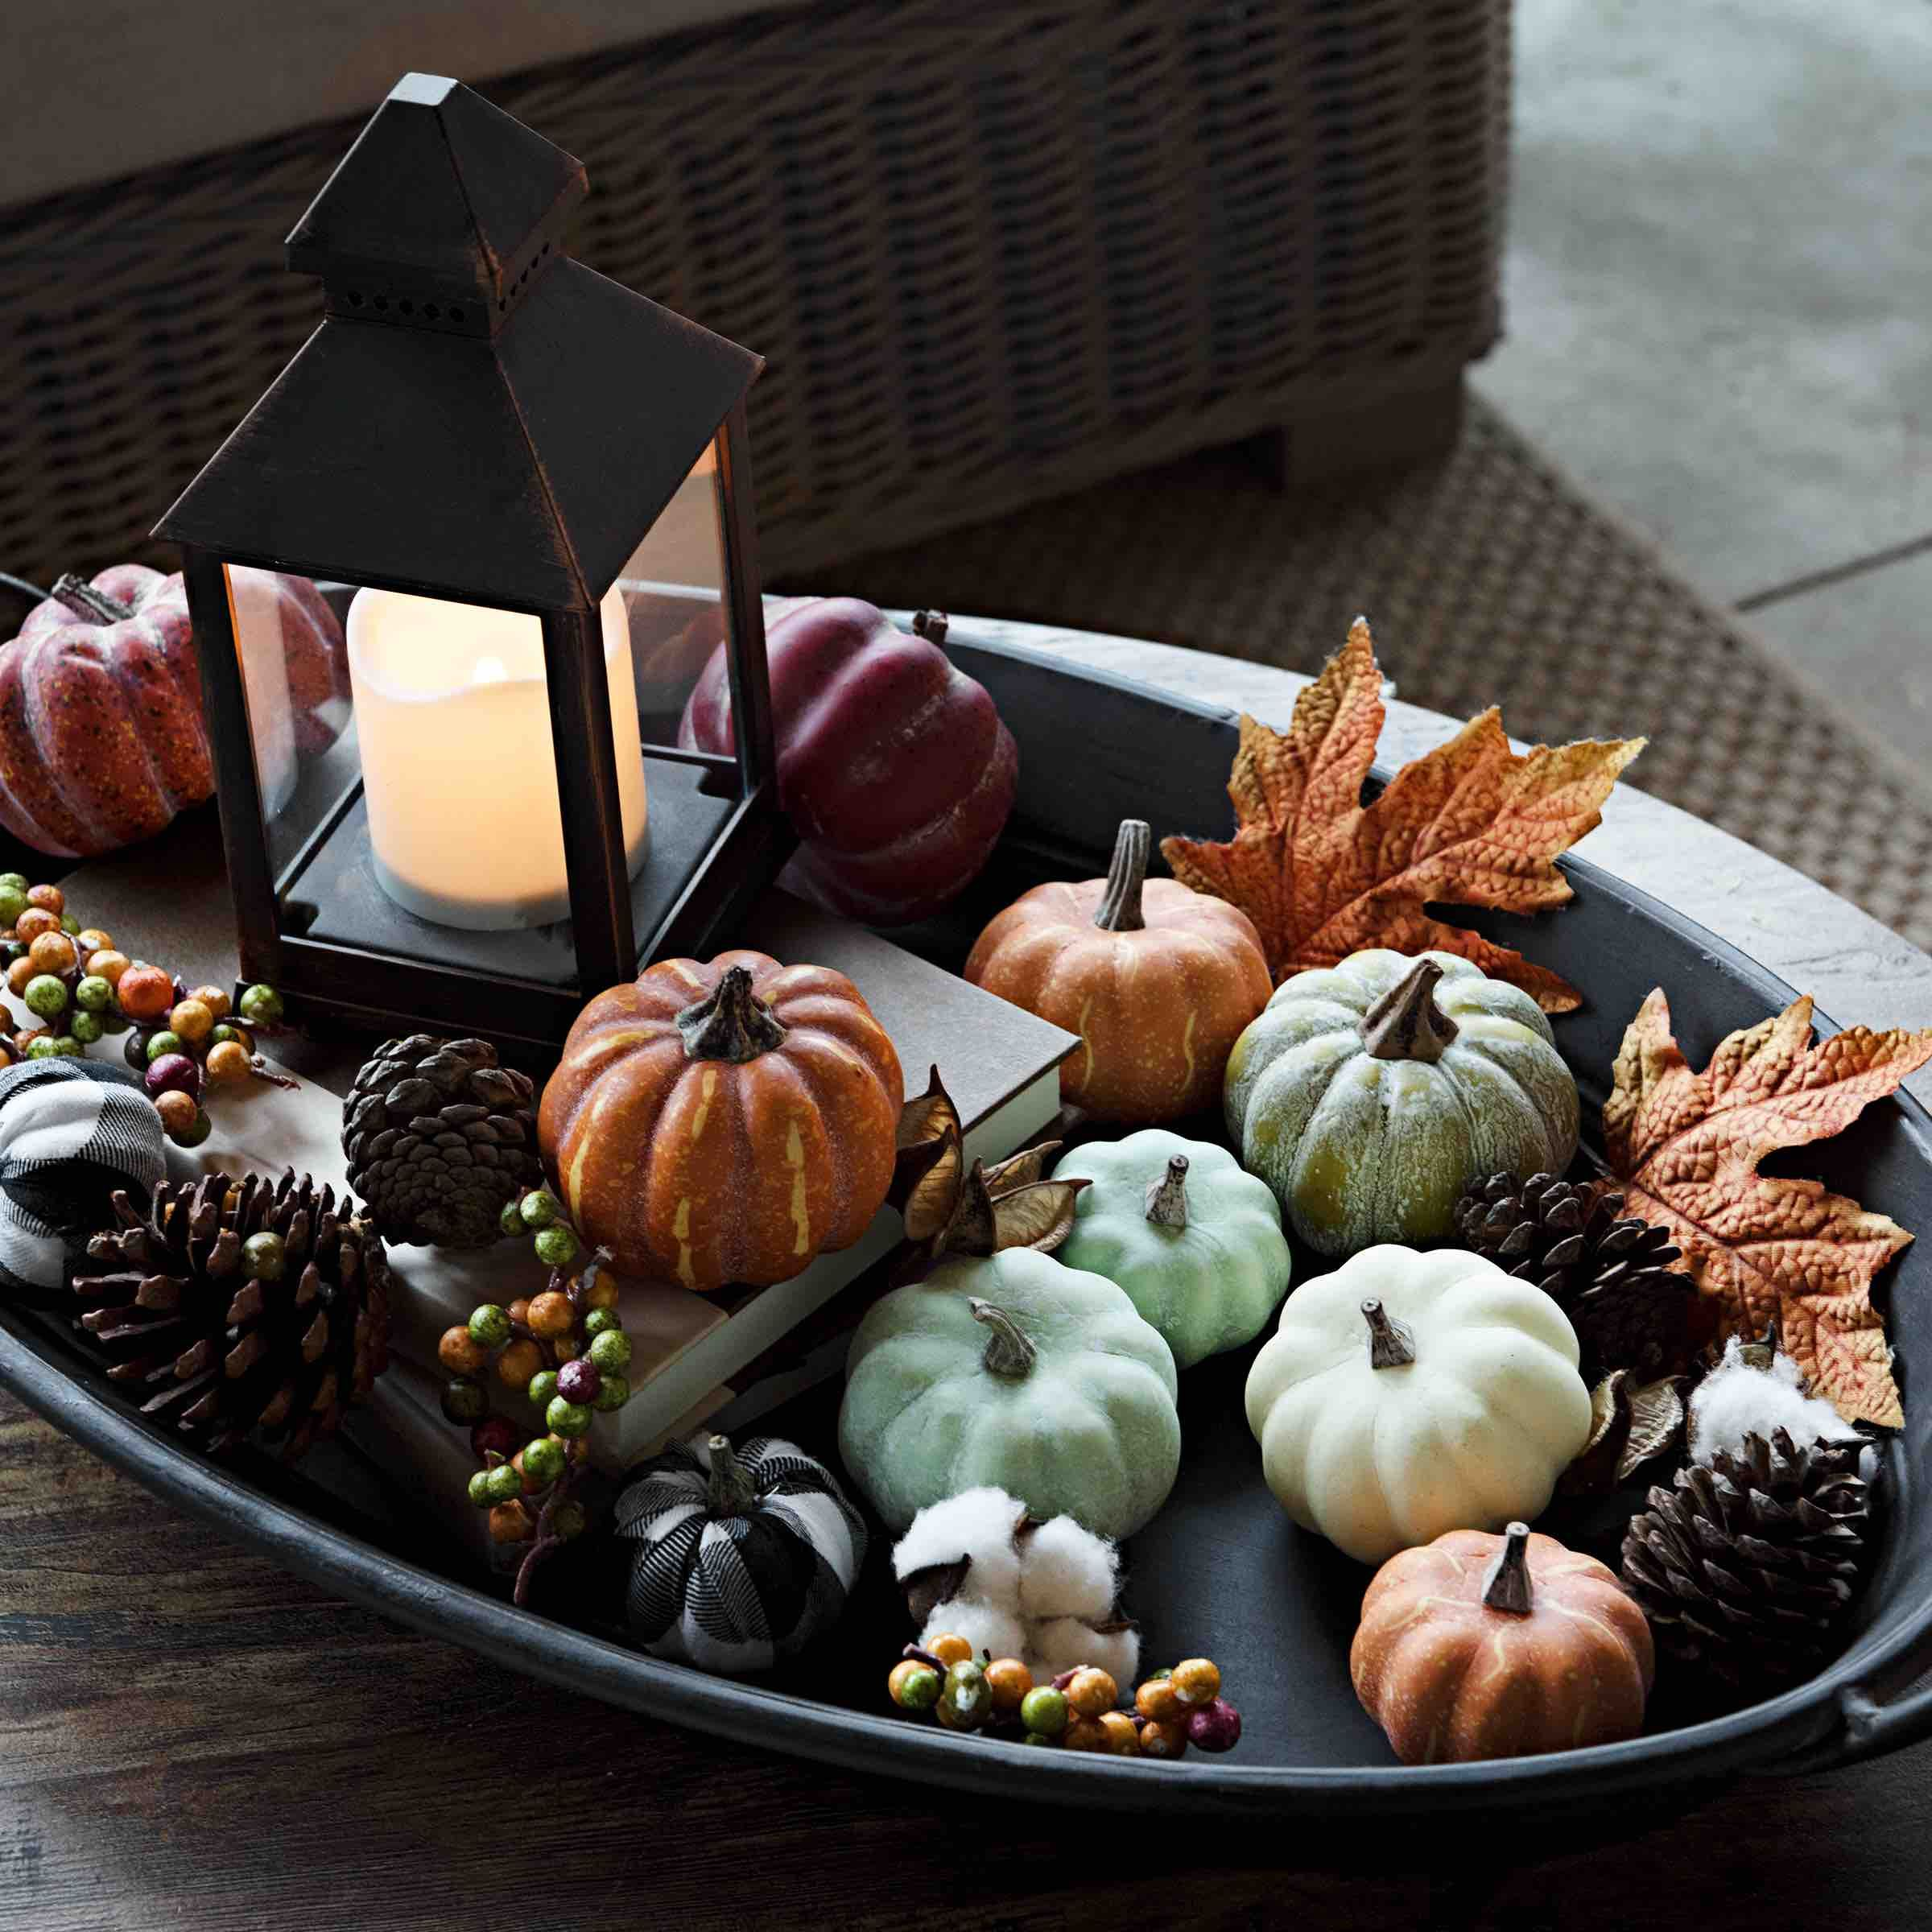 You can create your own centerpiece for the coffee table ...